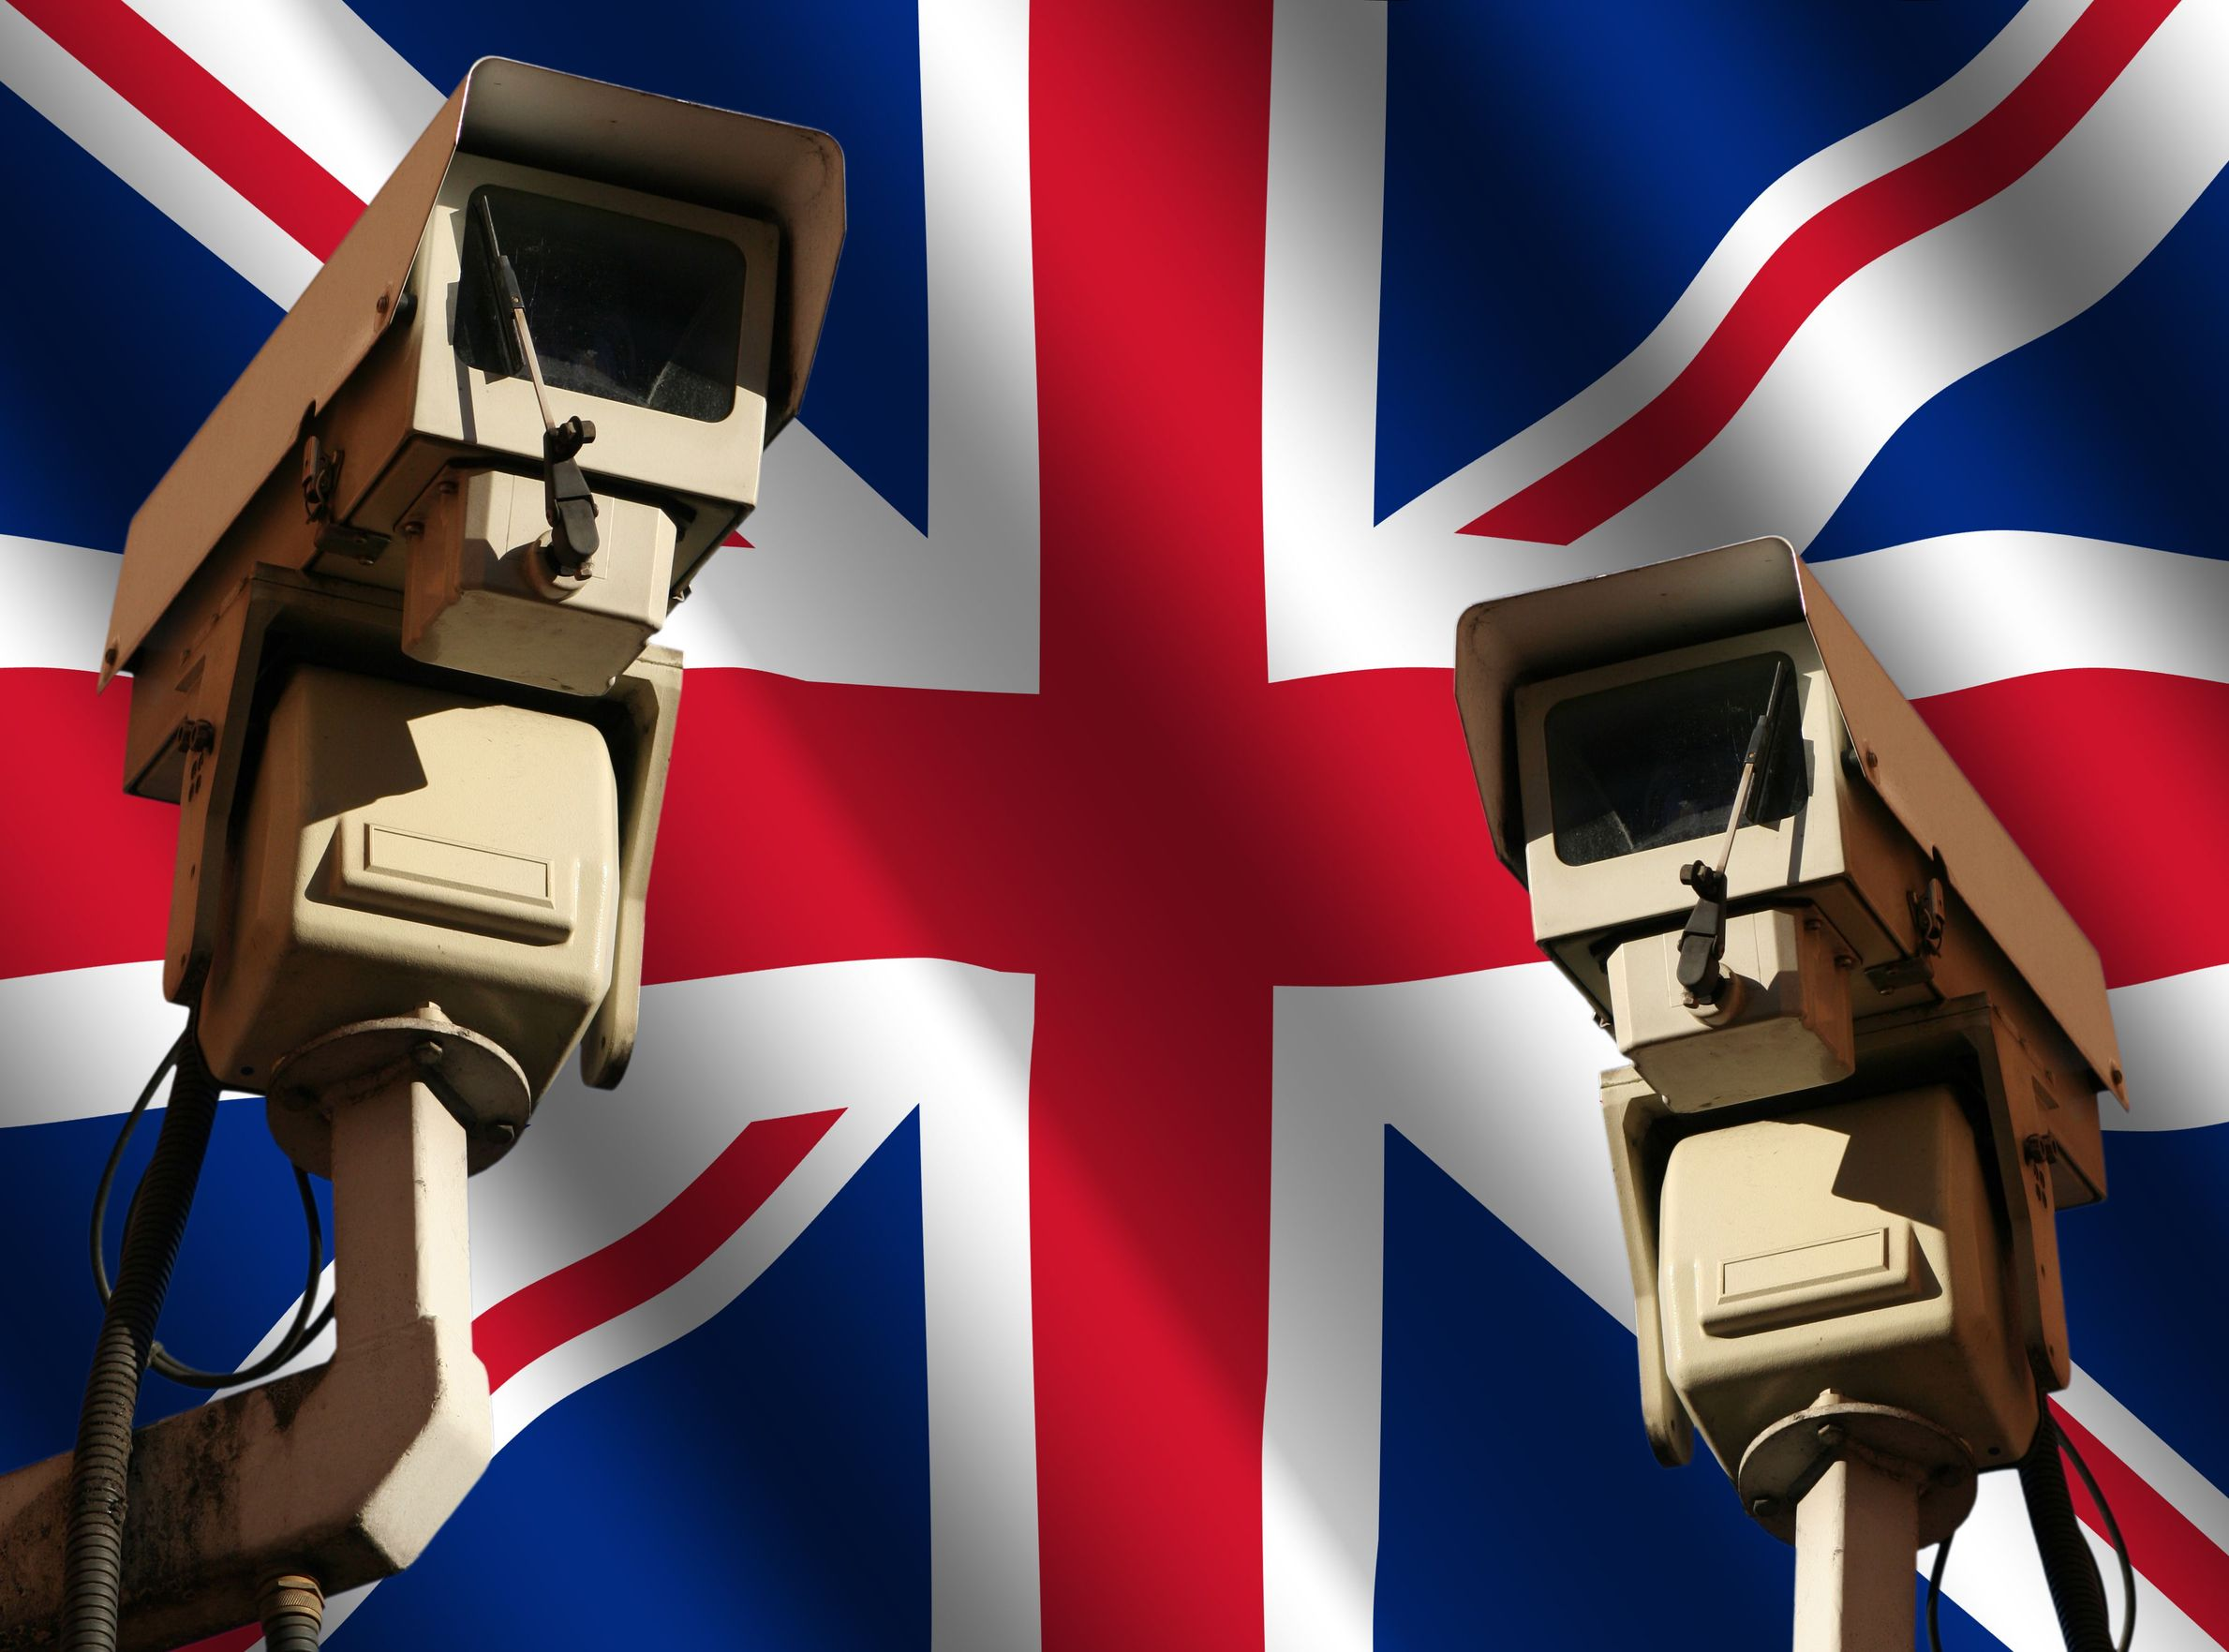 3547687 - two cctv cameras and rippled british flag illustration